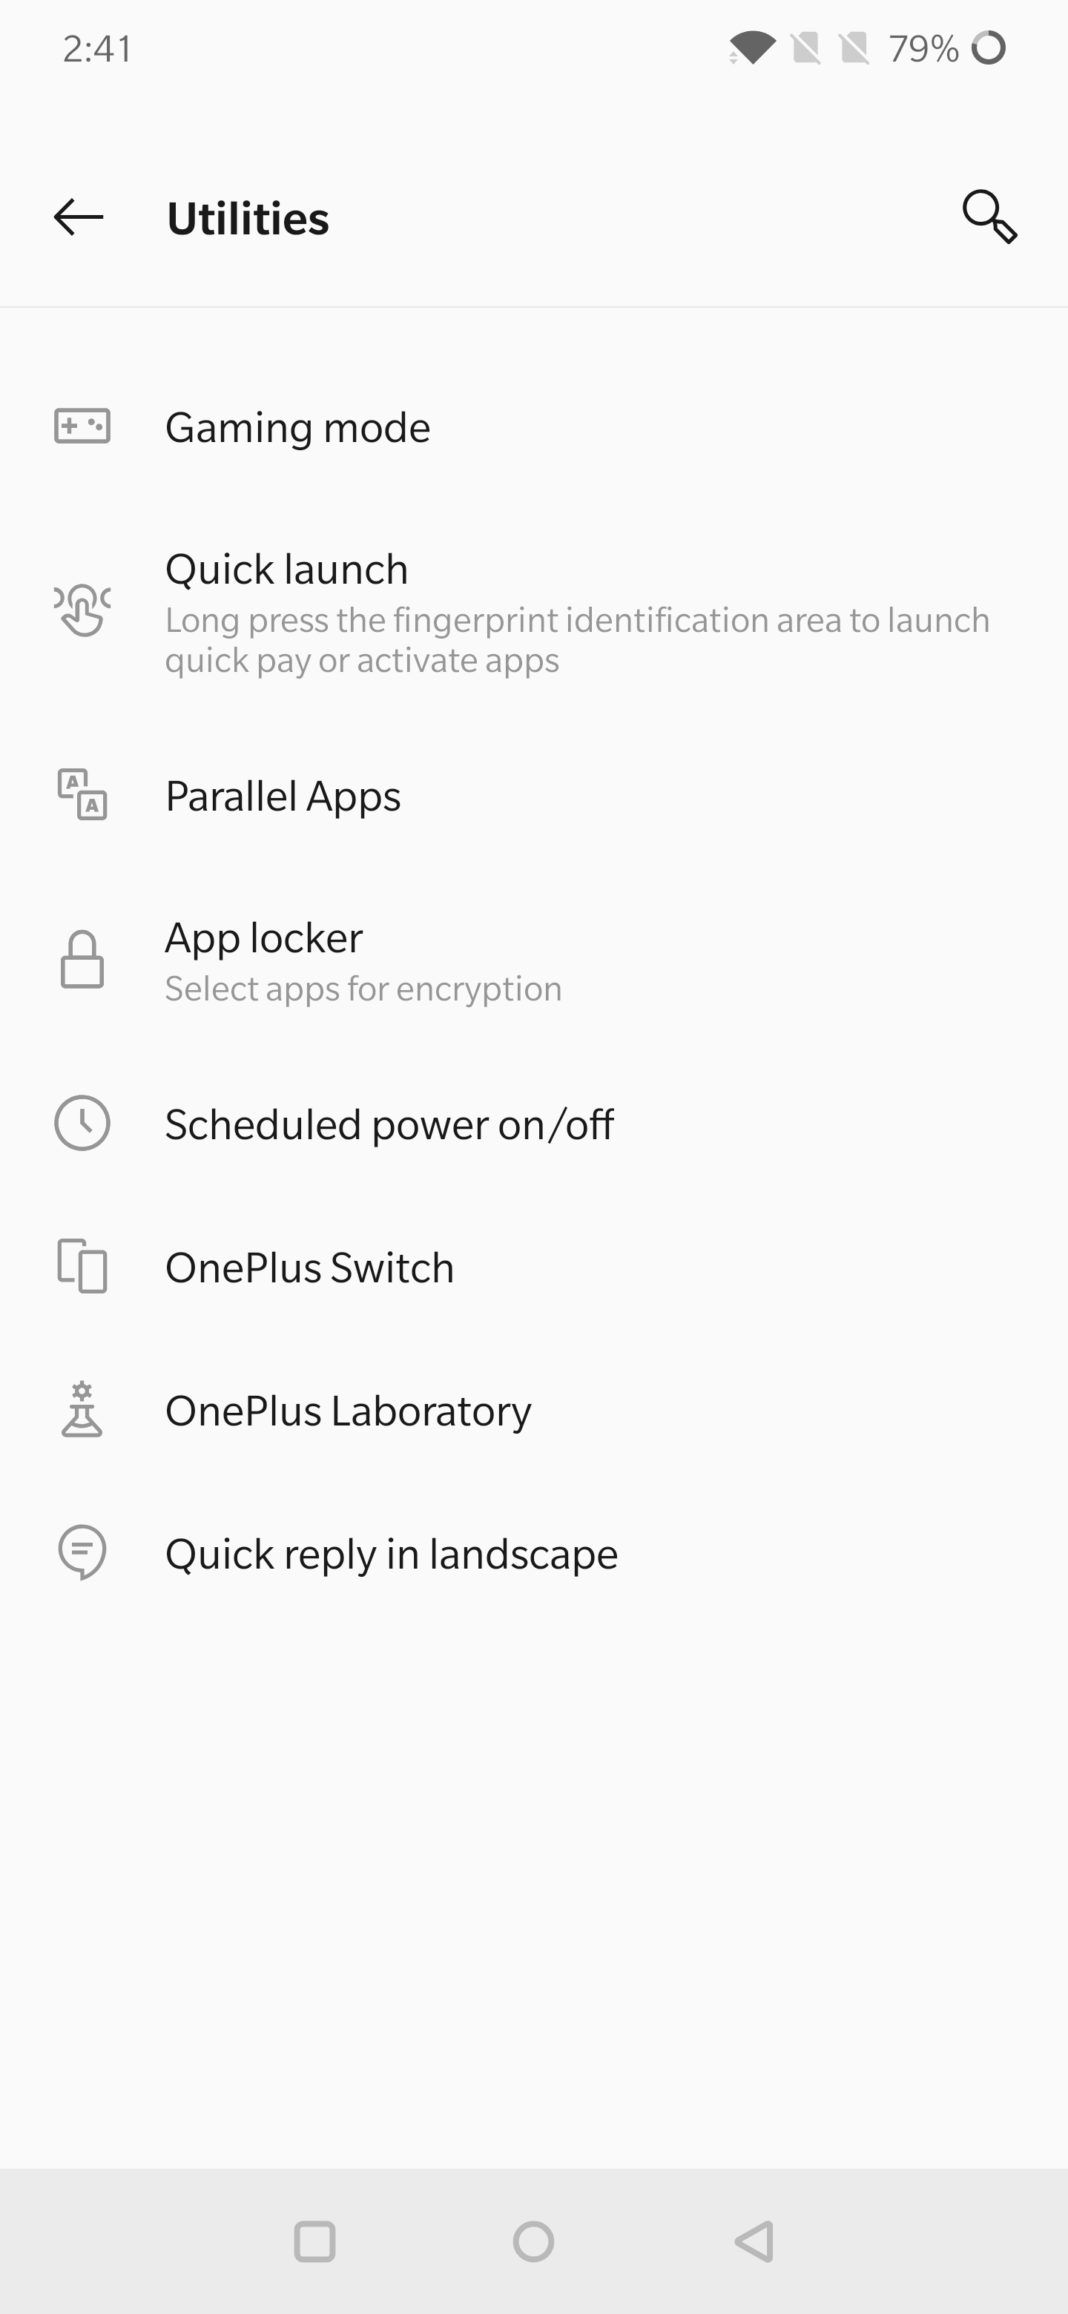 oneplus 7 pro software 5